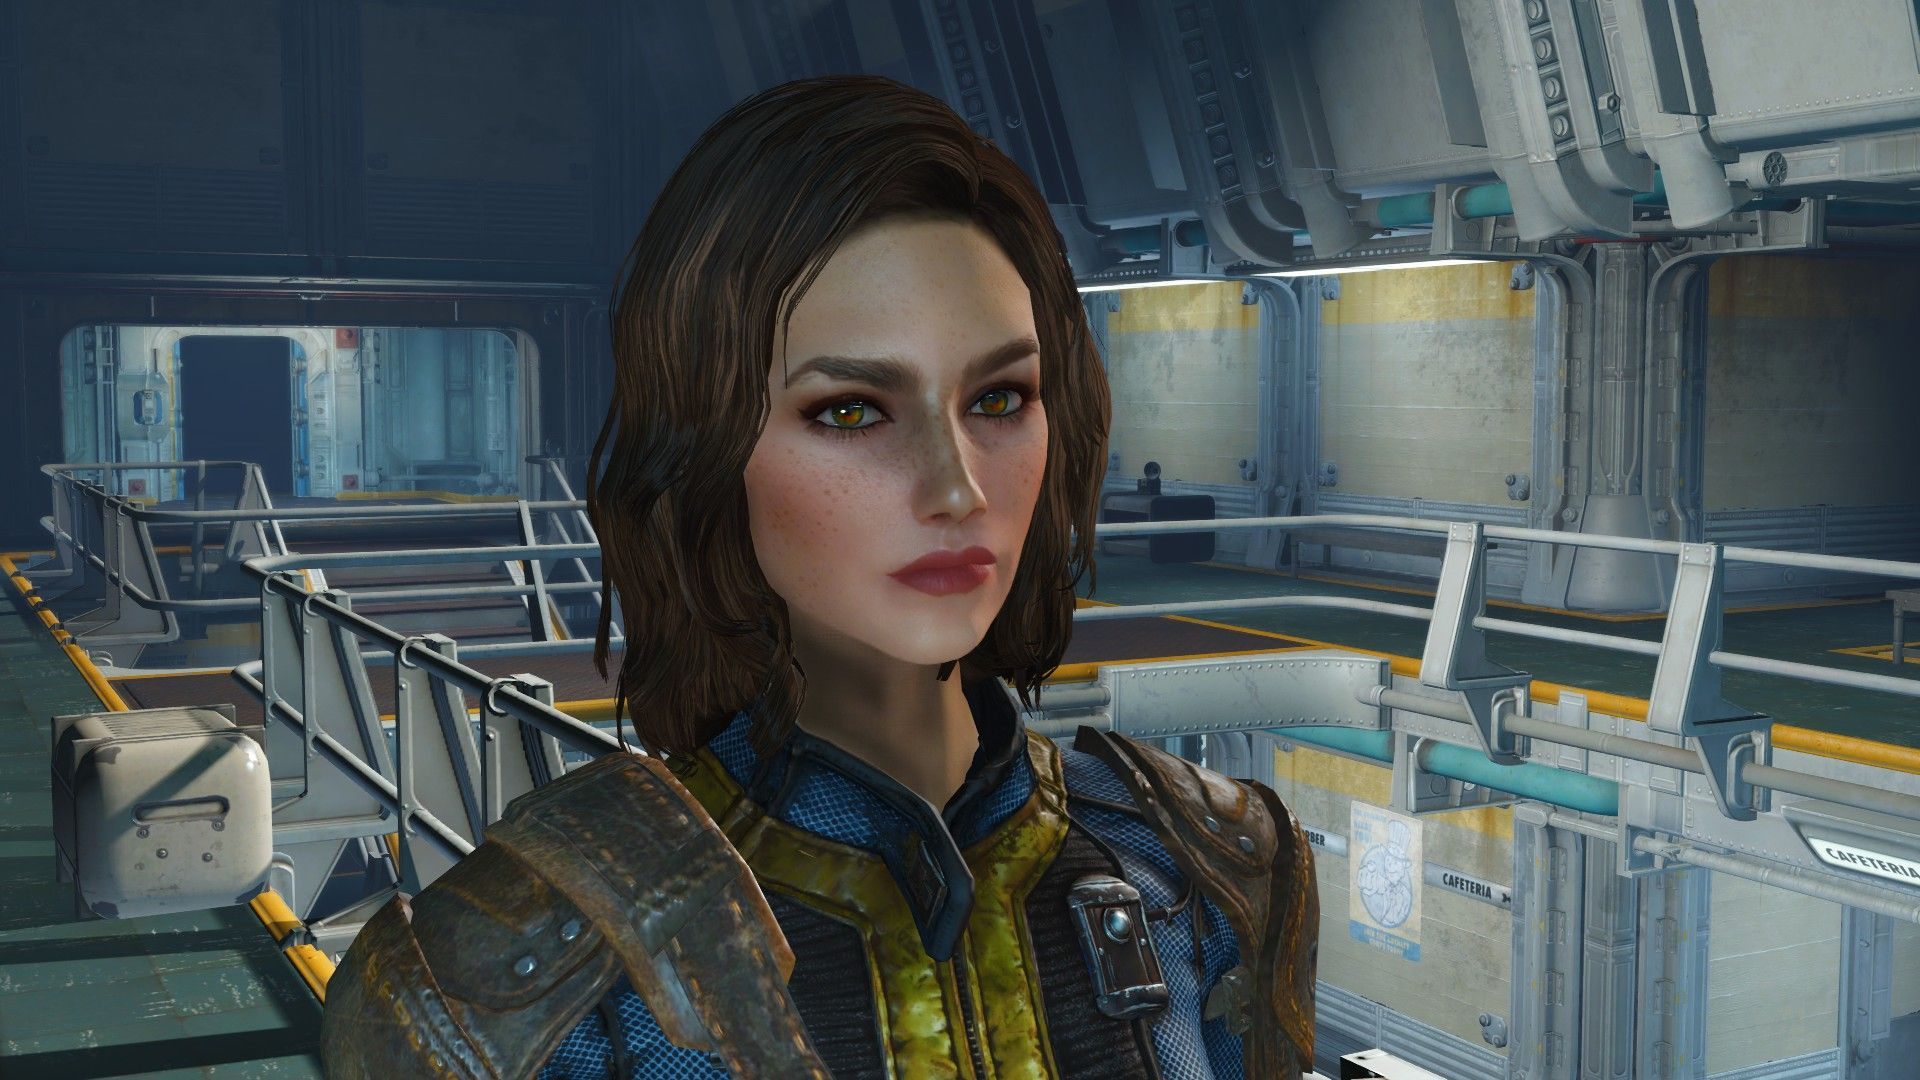 Fallout 4 Character Design Tips : Fallout character mod google search game design